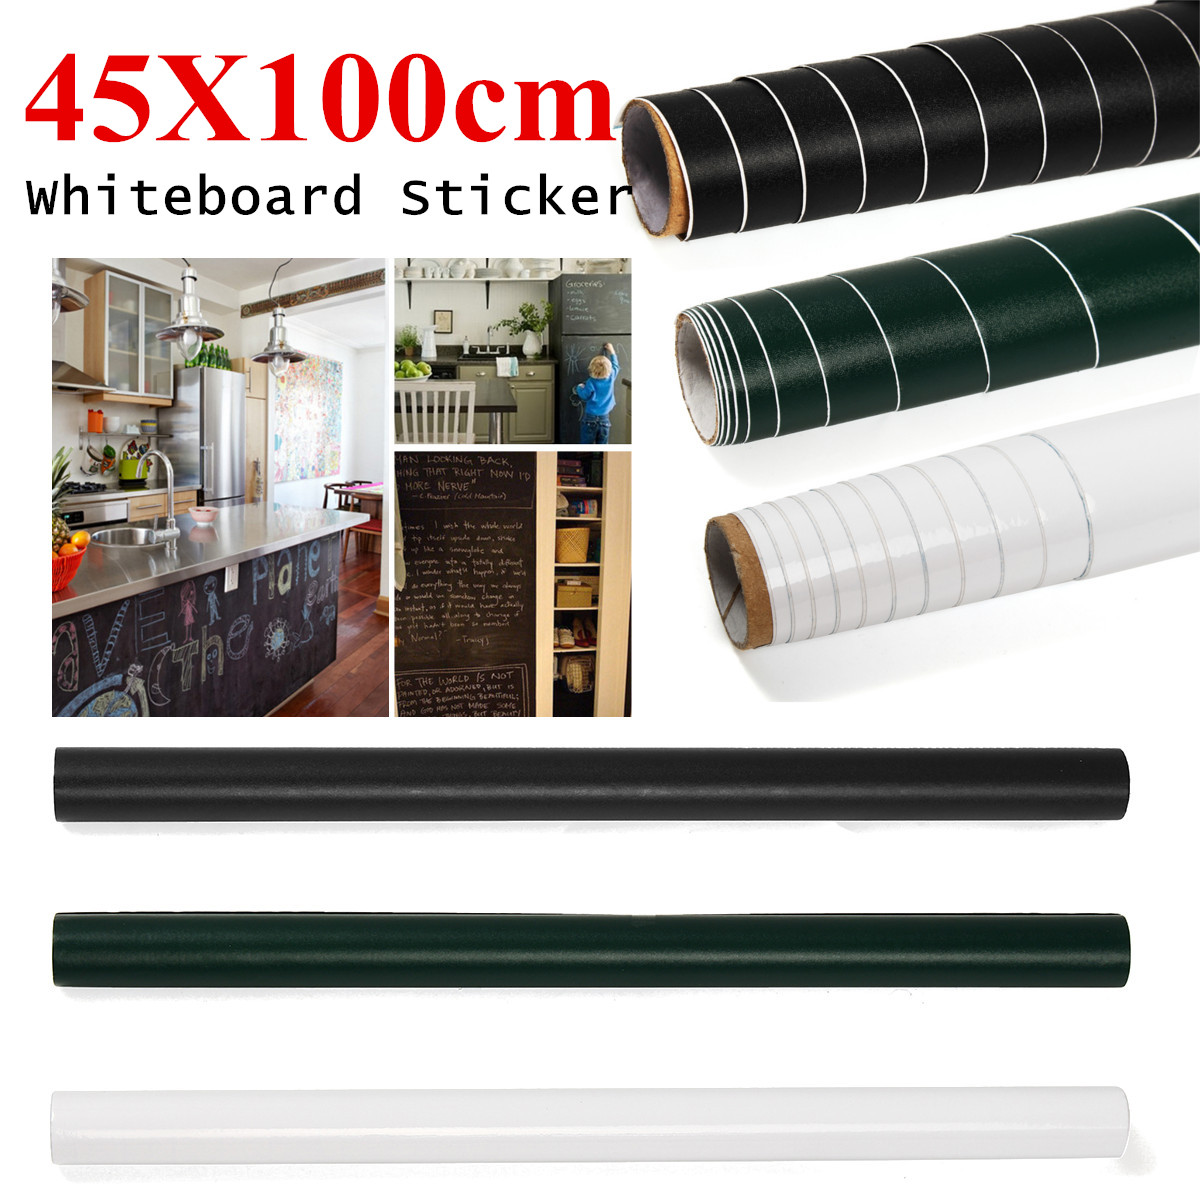 45X100cm Removable WhiteBoard Paper Wall Sticker Dry Board Office Creative Decal